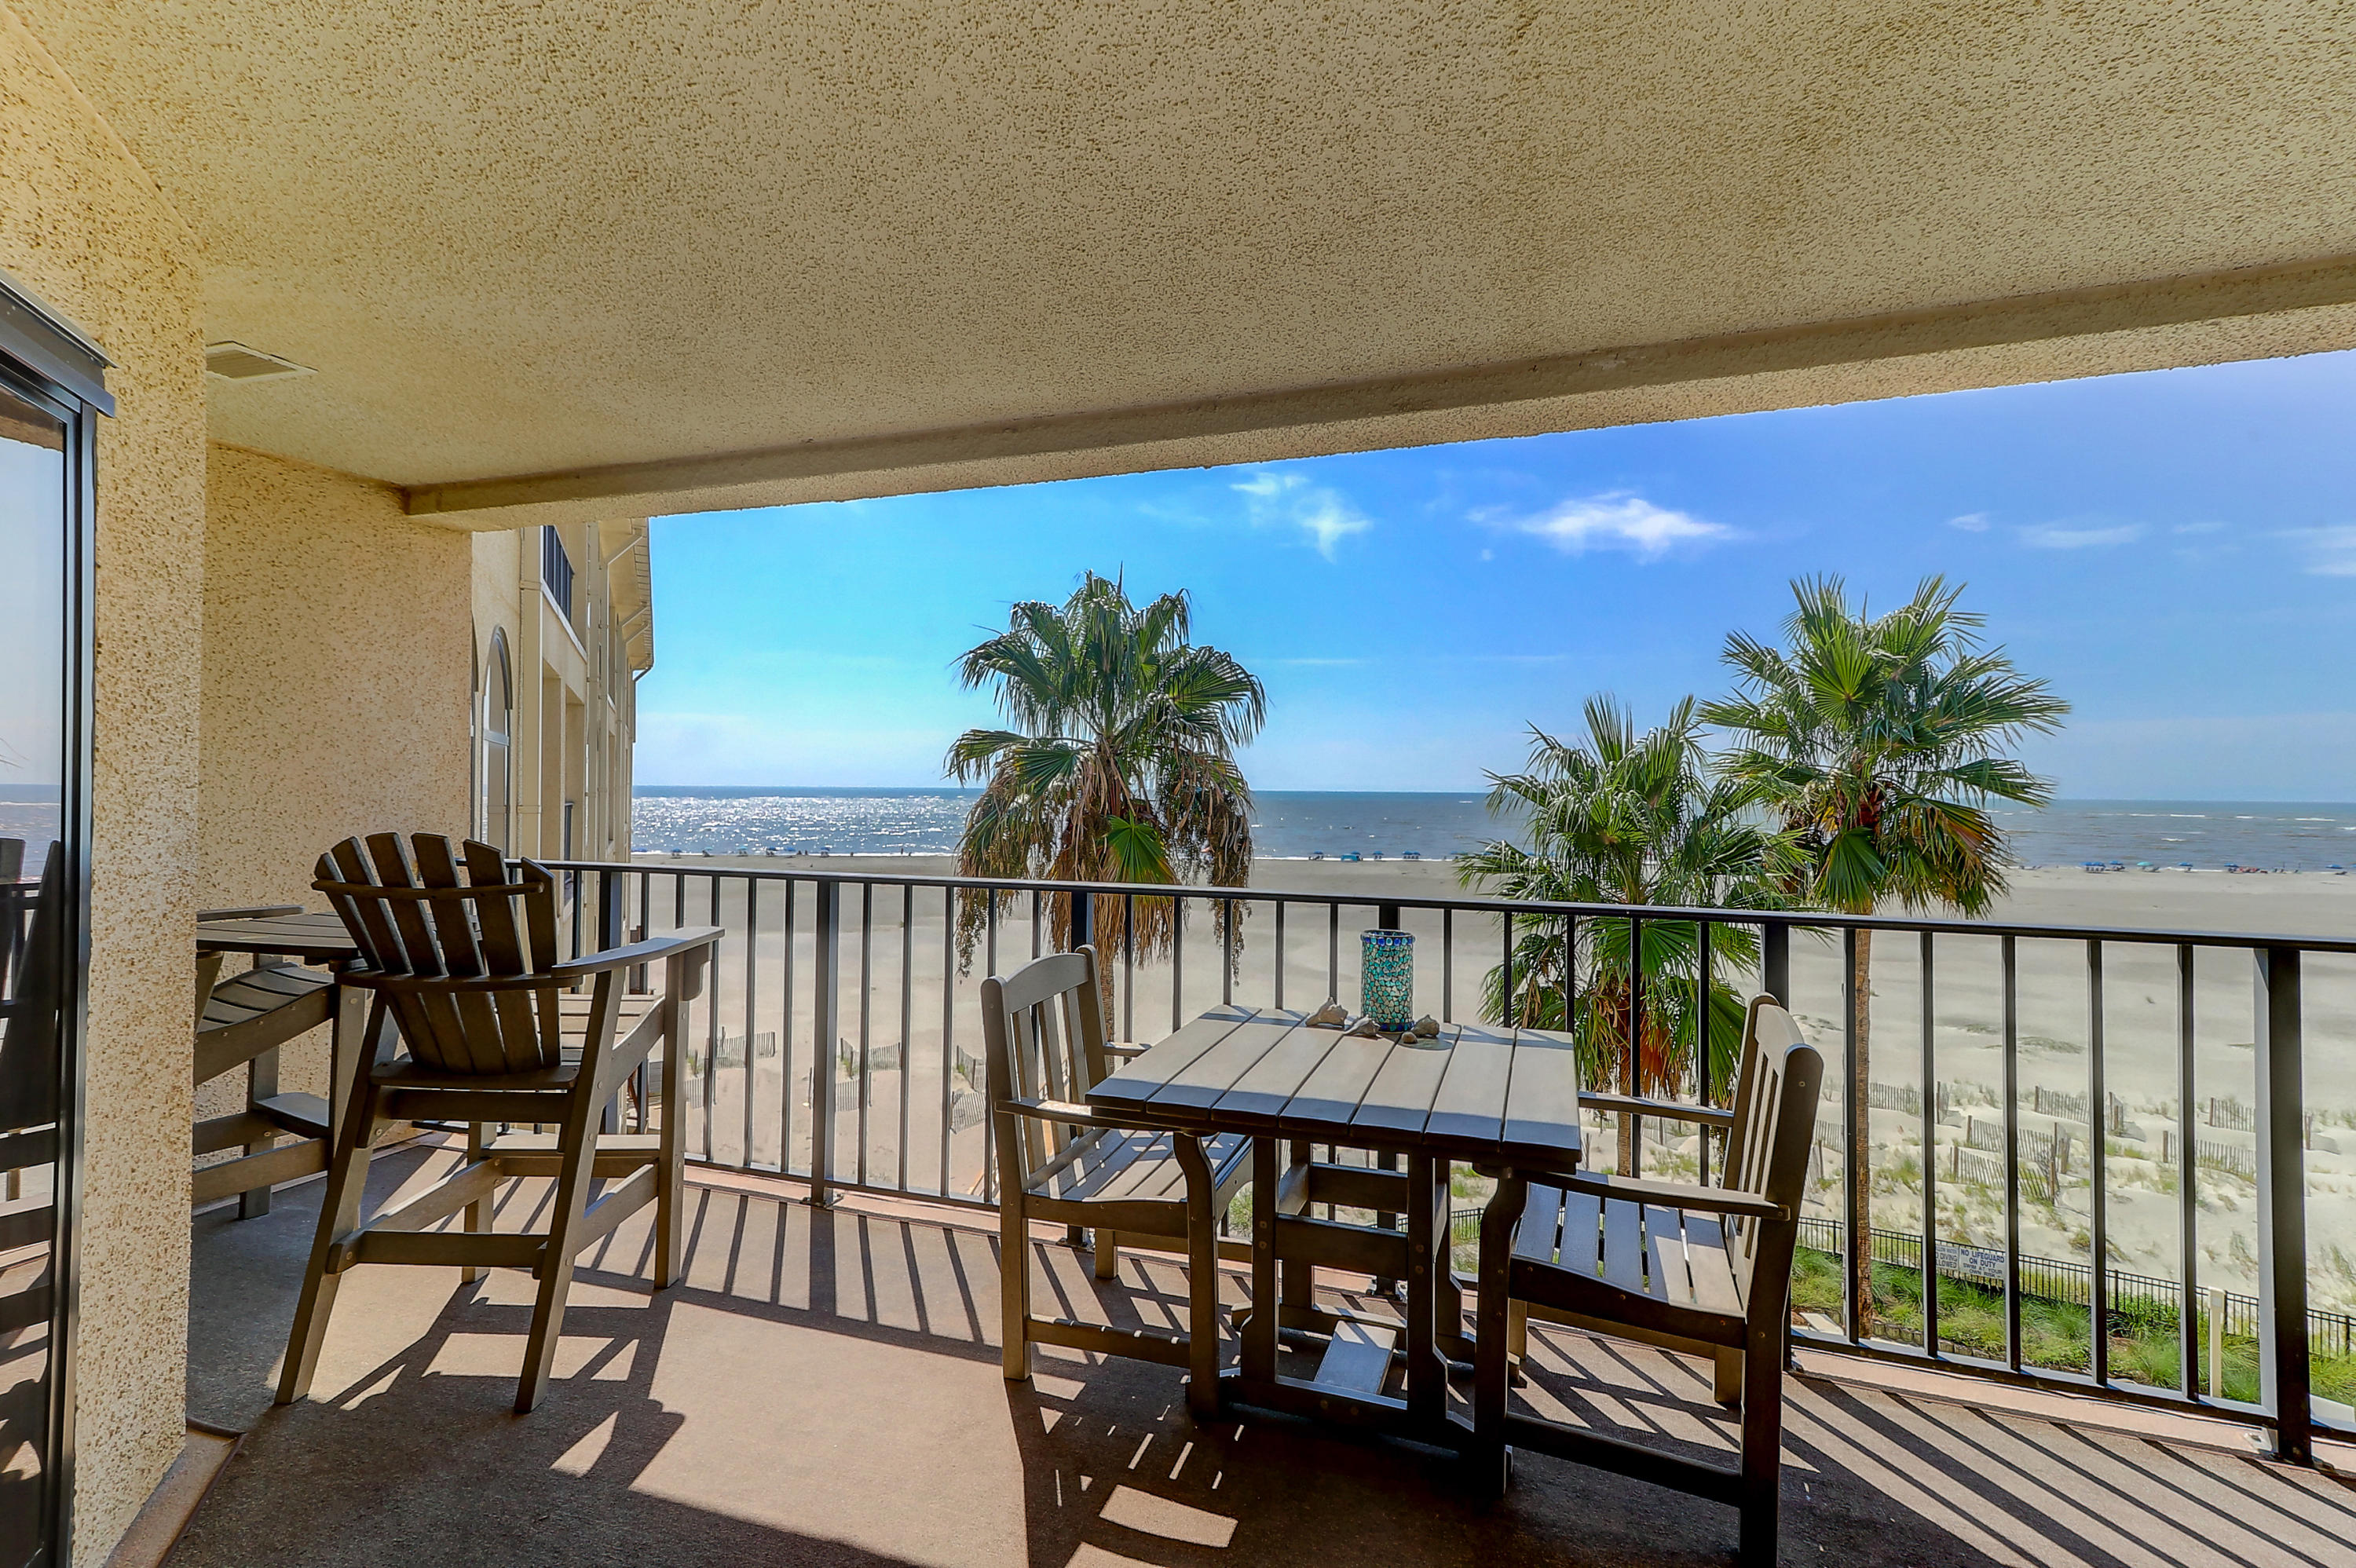 415 Seascape Villas Isle Of Palms, SC 29451